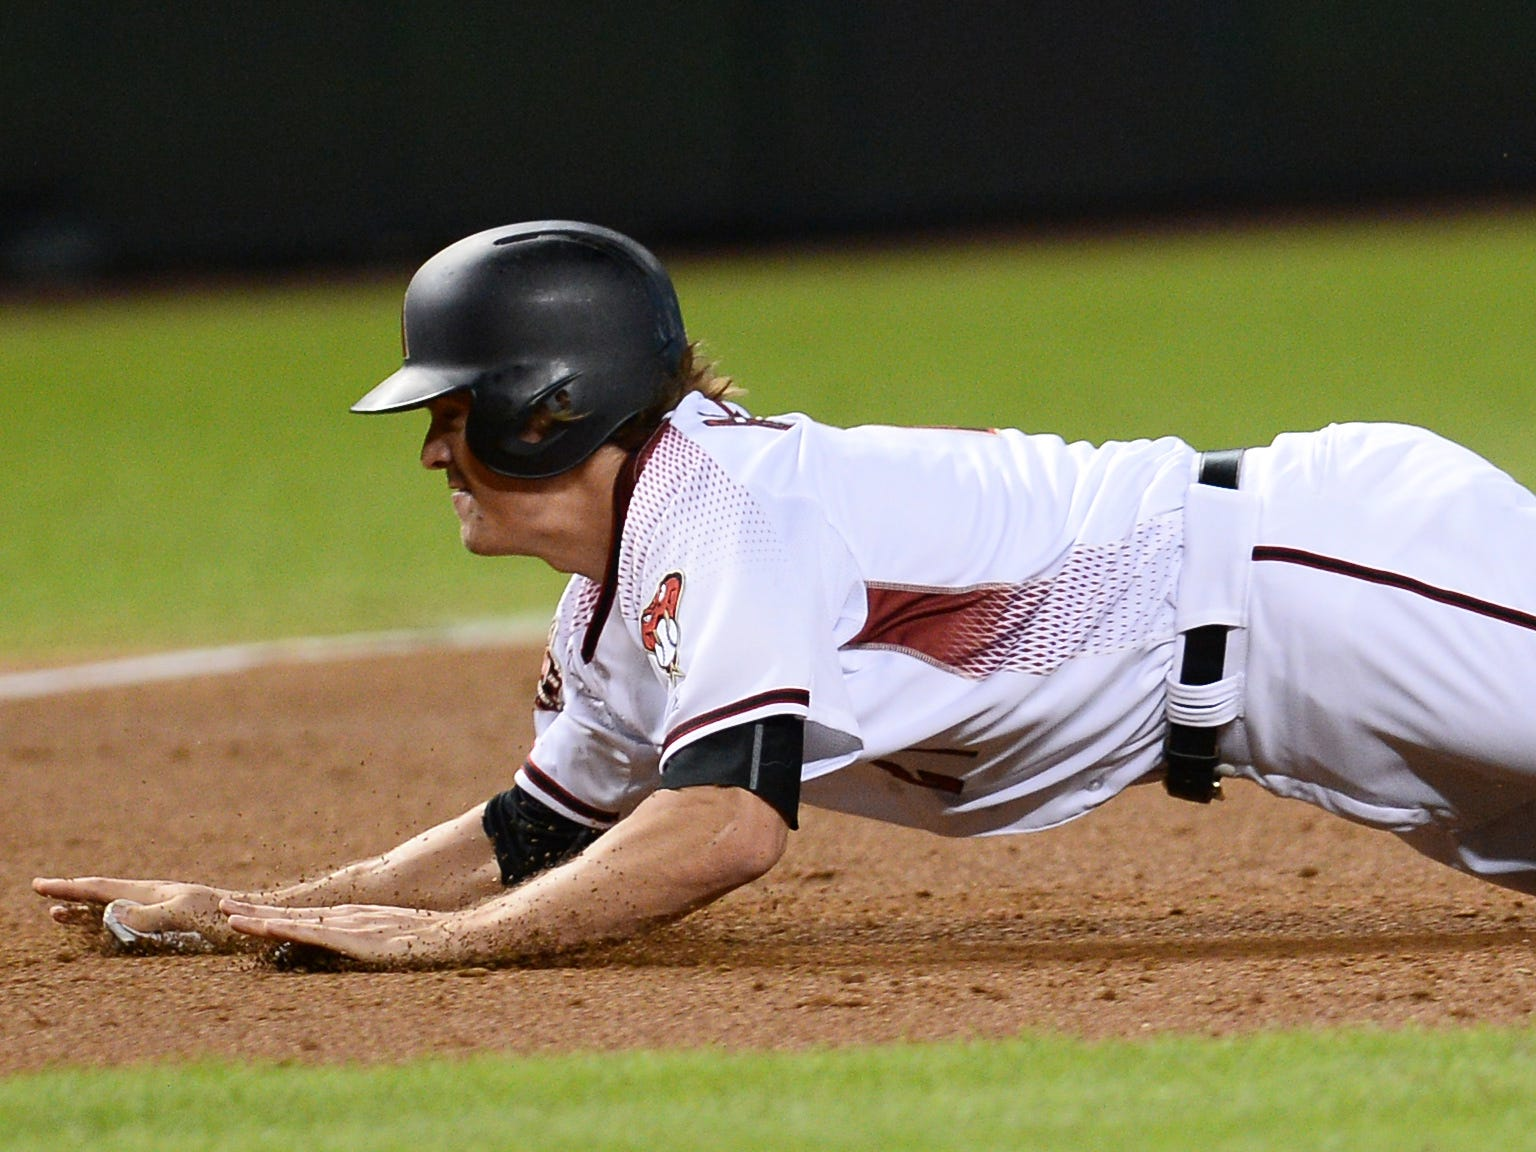 Sep 26, 2018; Phoenix, AZ, USA; Arizona Diamondbacks starting pitcher Zack Greinke (21) dives into third base during a tag up play against the Los Angeles Dodgers during the second inning at Chase Field.